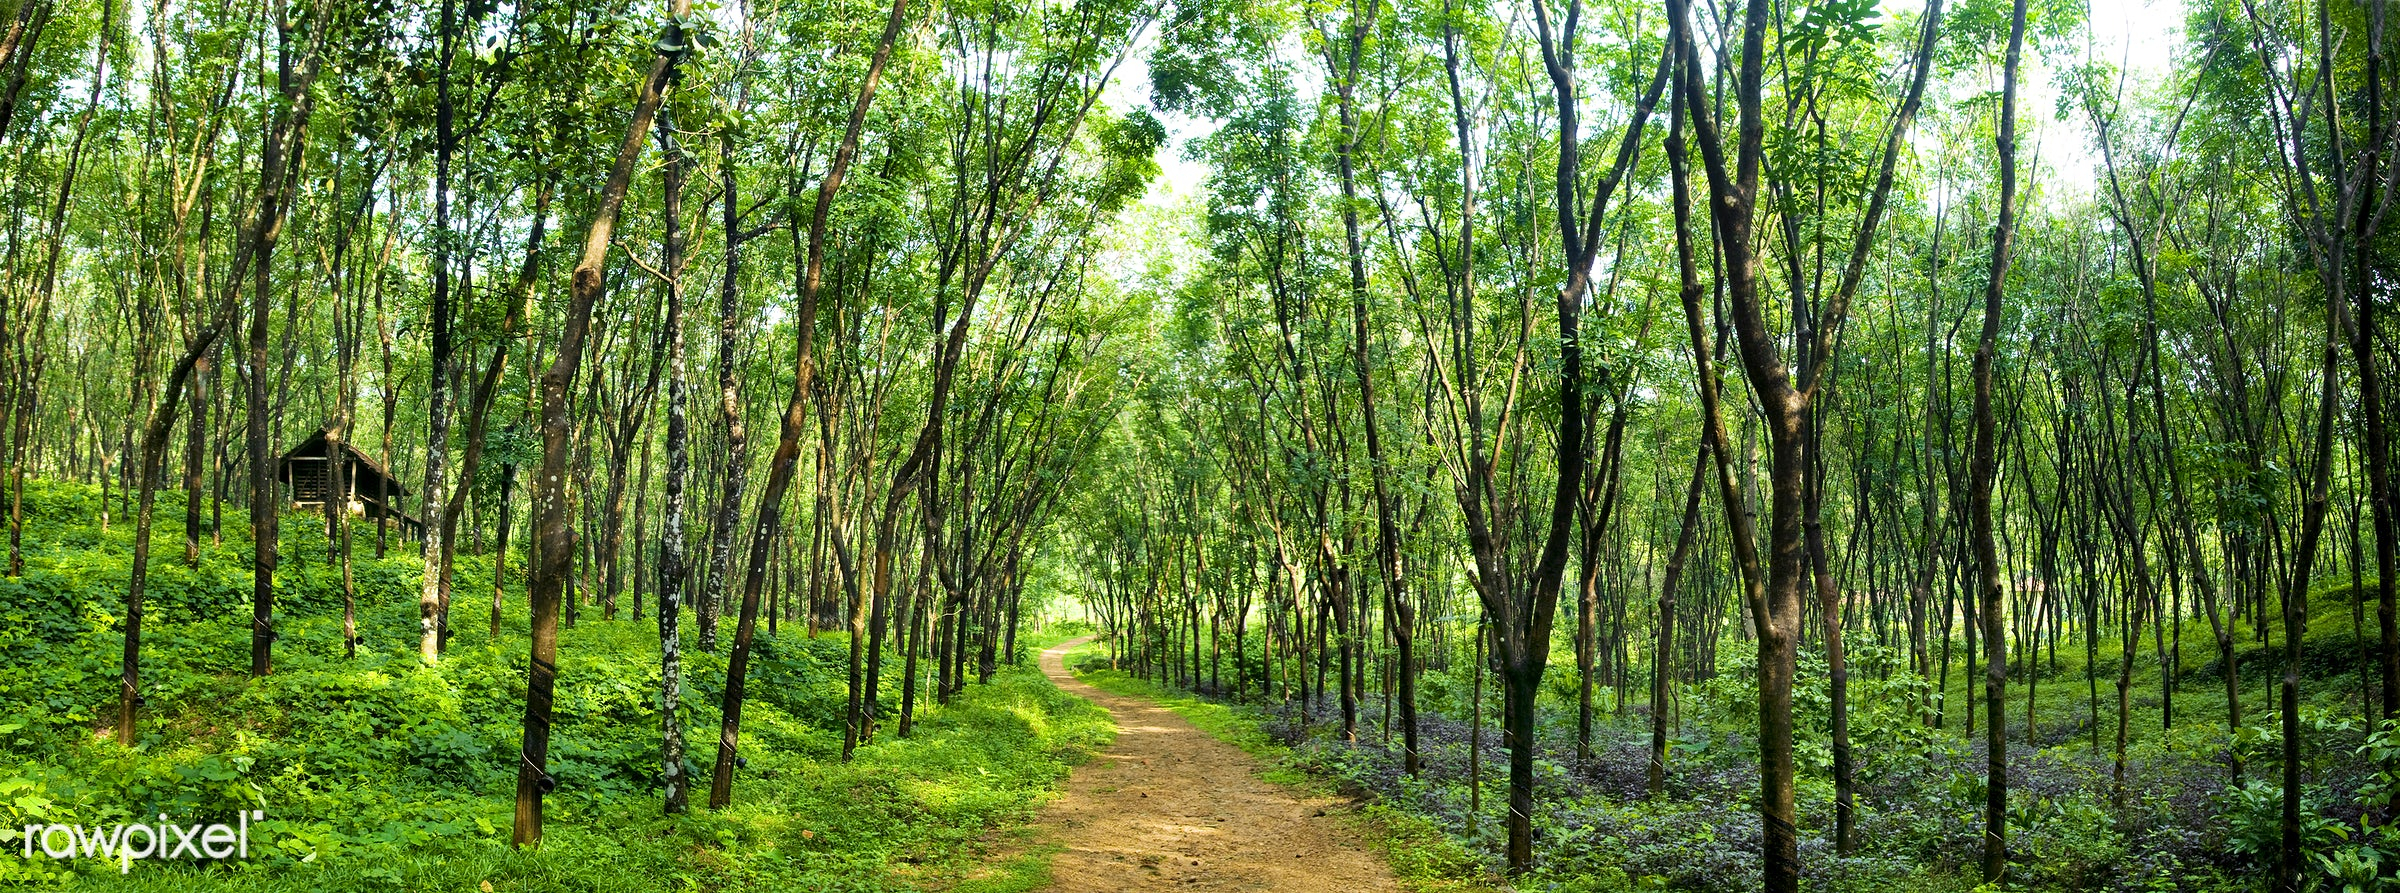 Enchanting forest lane in a rubber tree plantation, Kerela, India. - road, landscape, nature, beauty in nature, branch, bush...